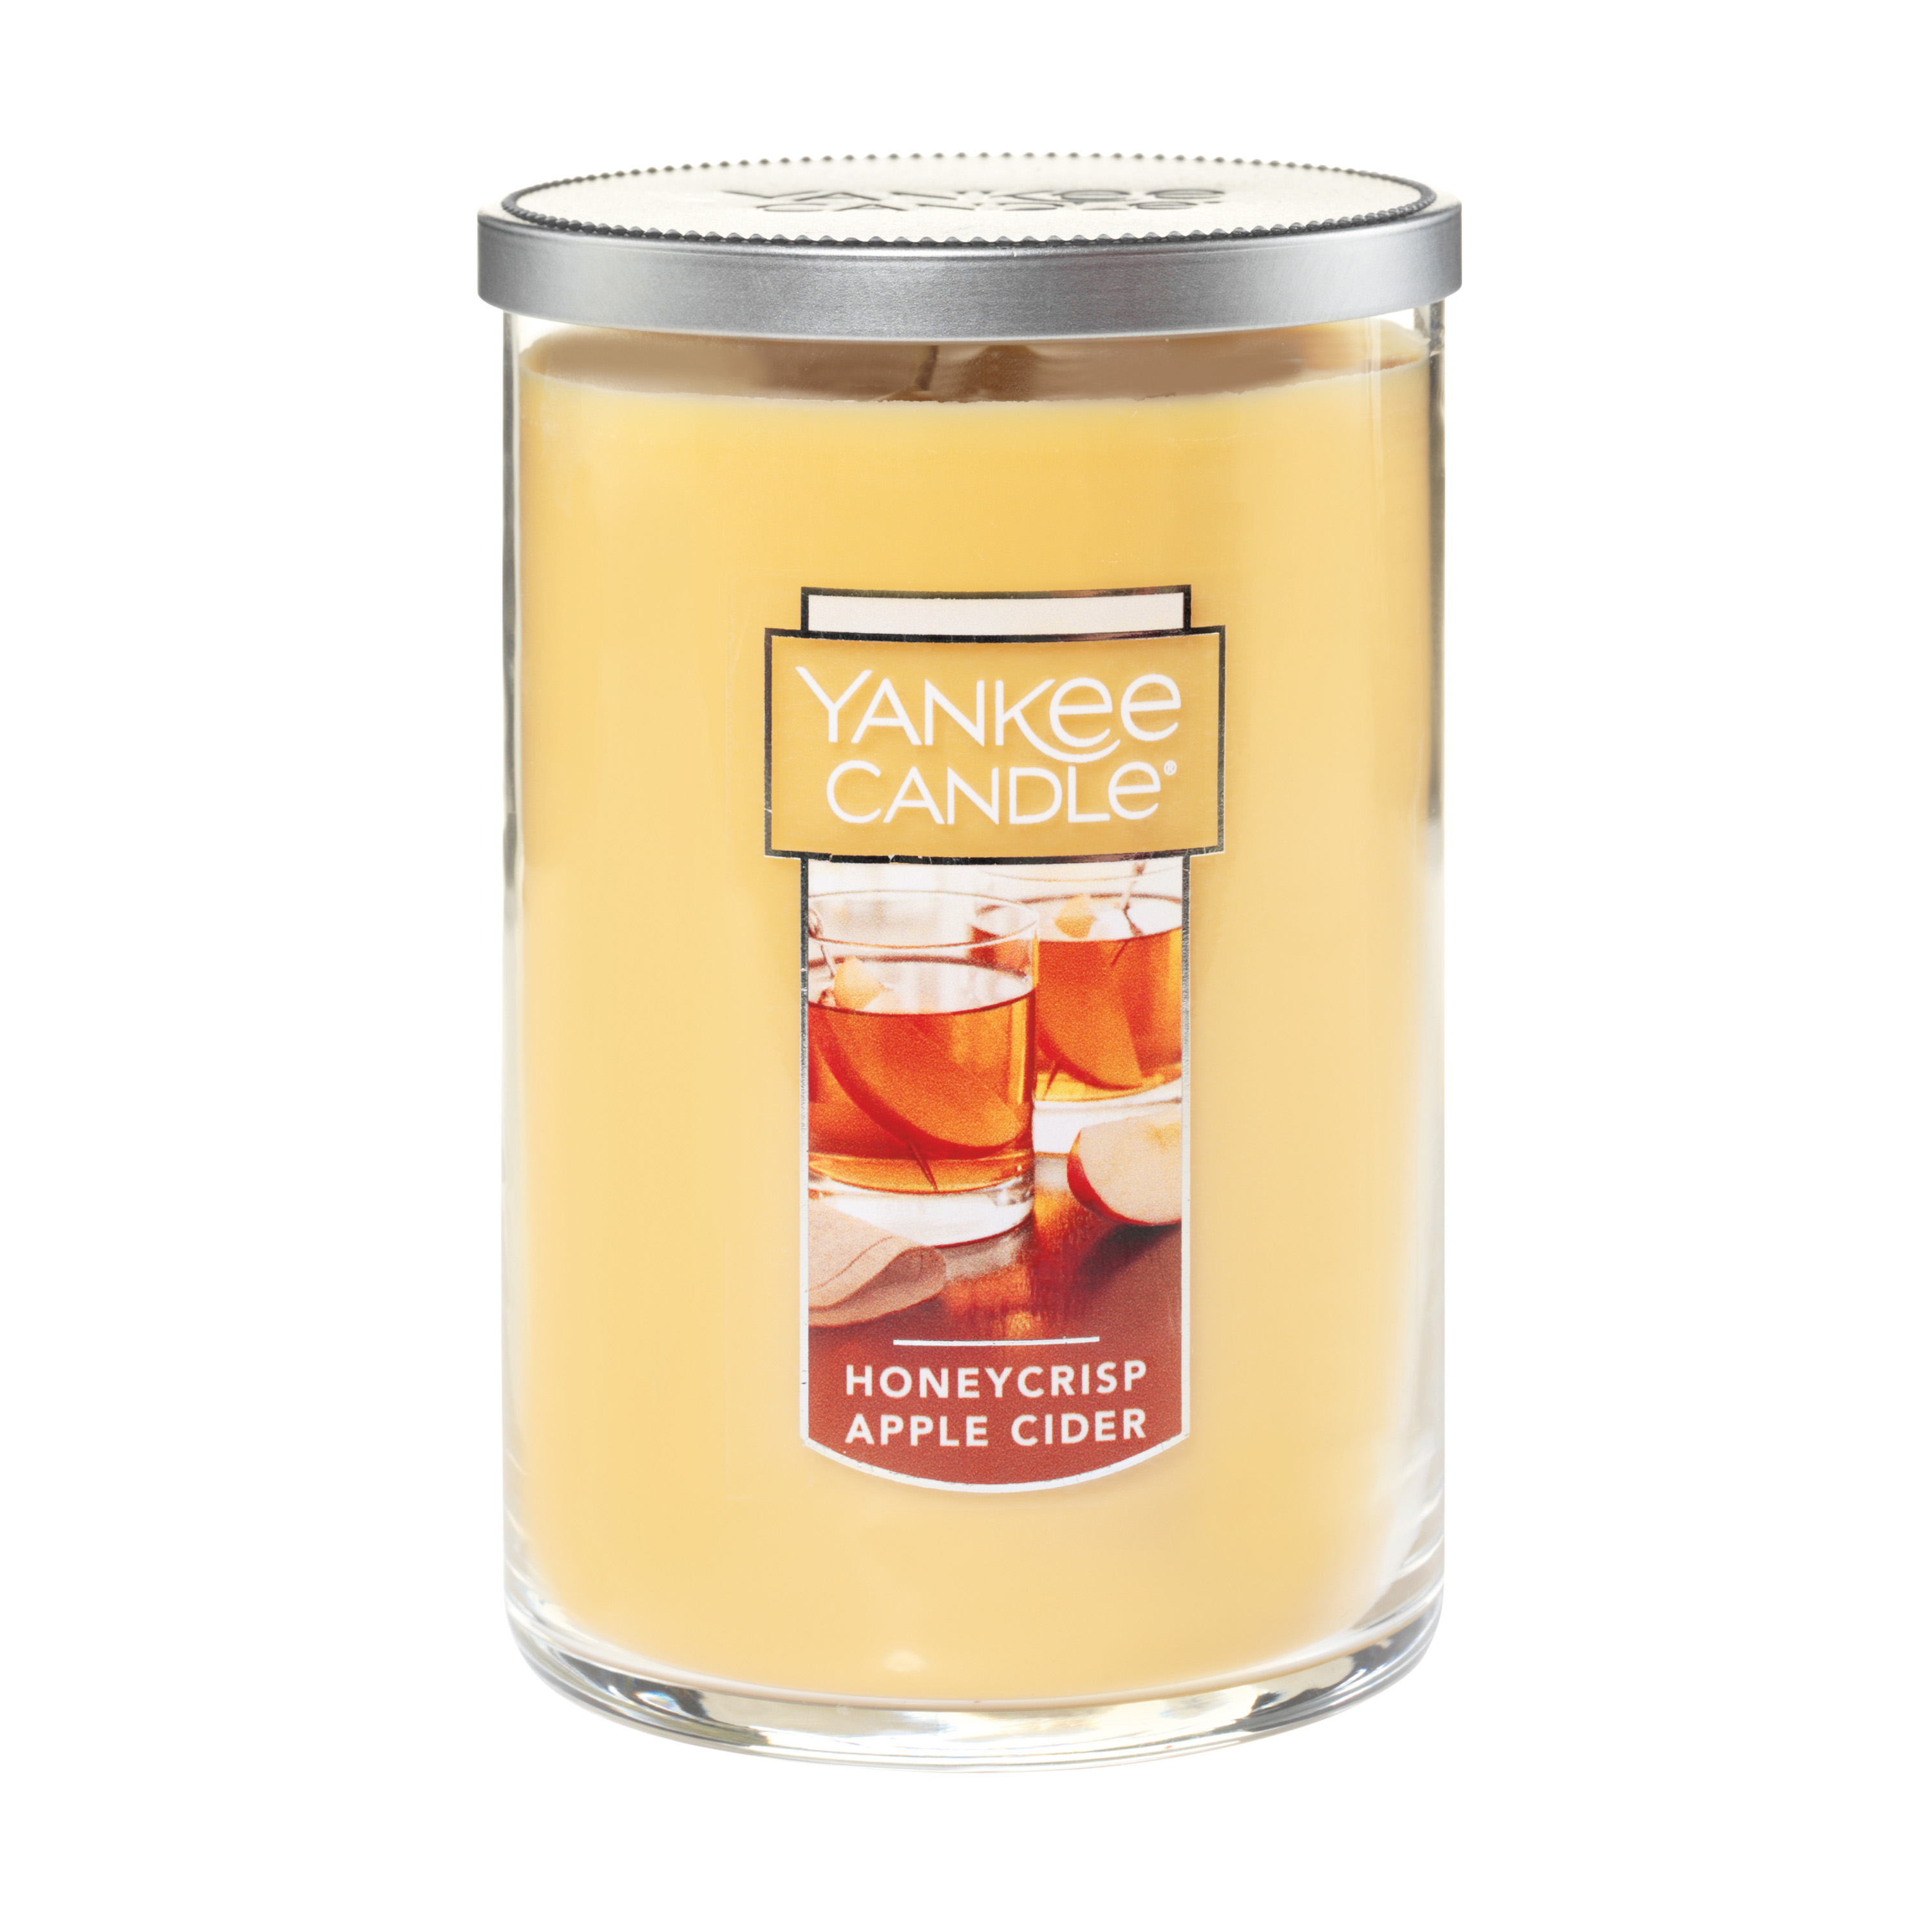 Yankee Candle Large 2Wick Tumbler Scented Candle